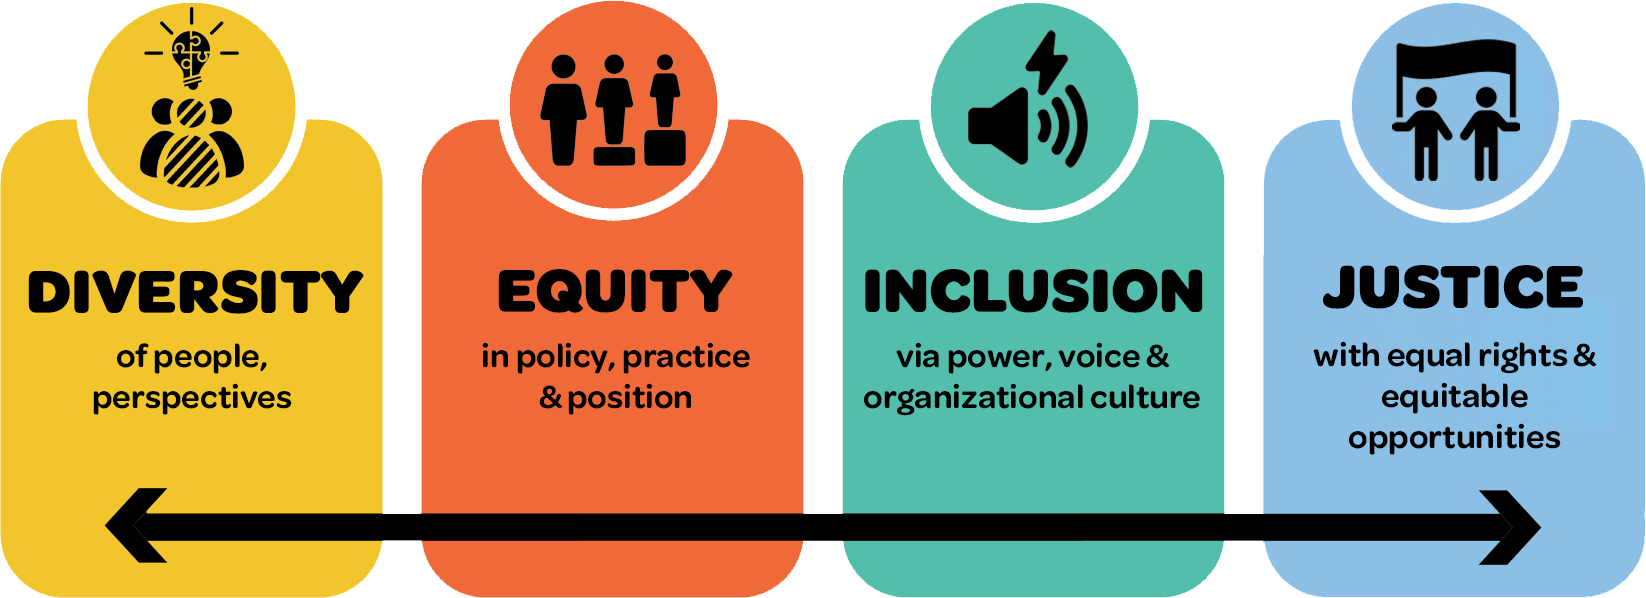 Report on the library's ongoing equity and justice work